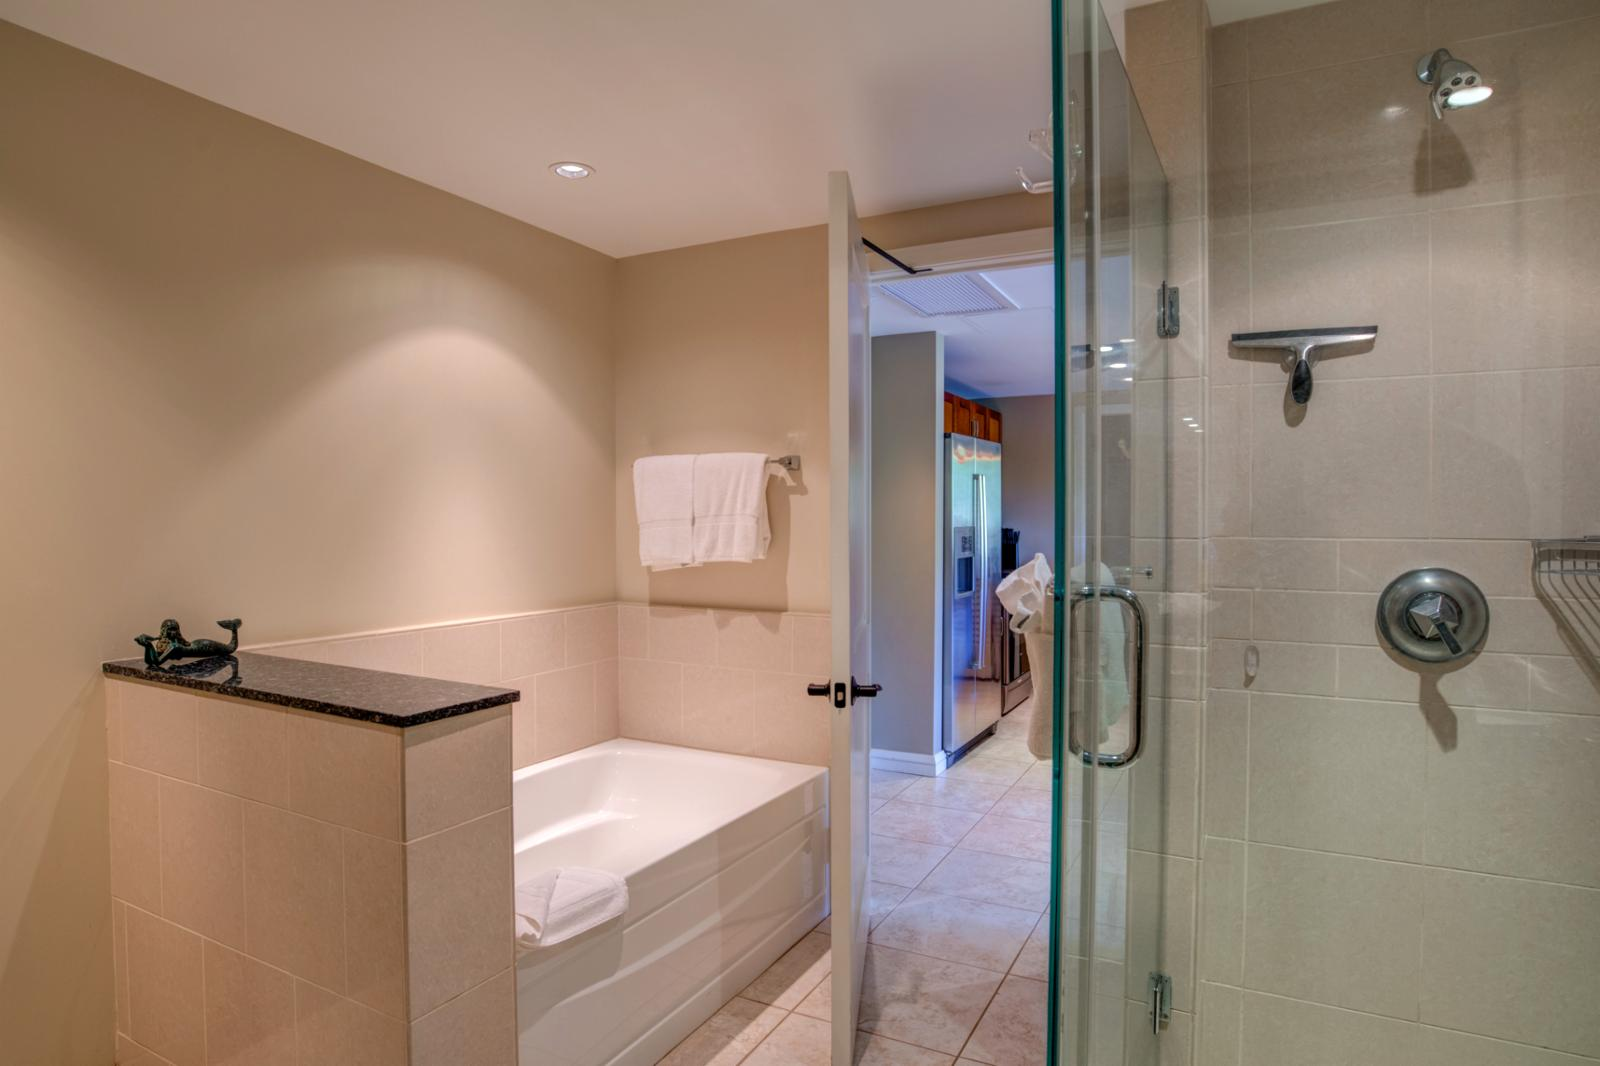 Bath and glass shower combination